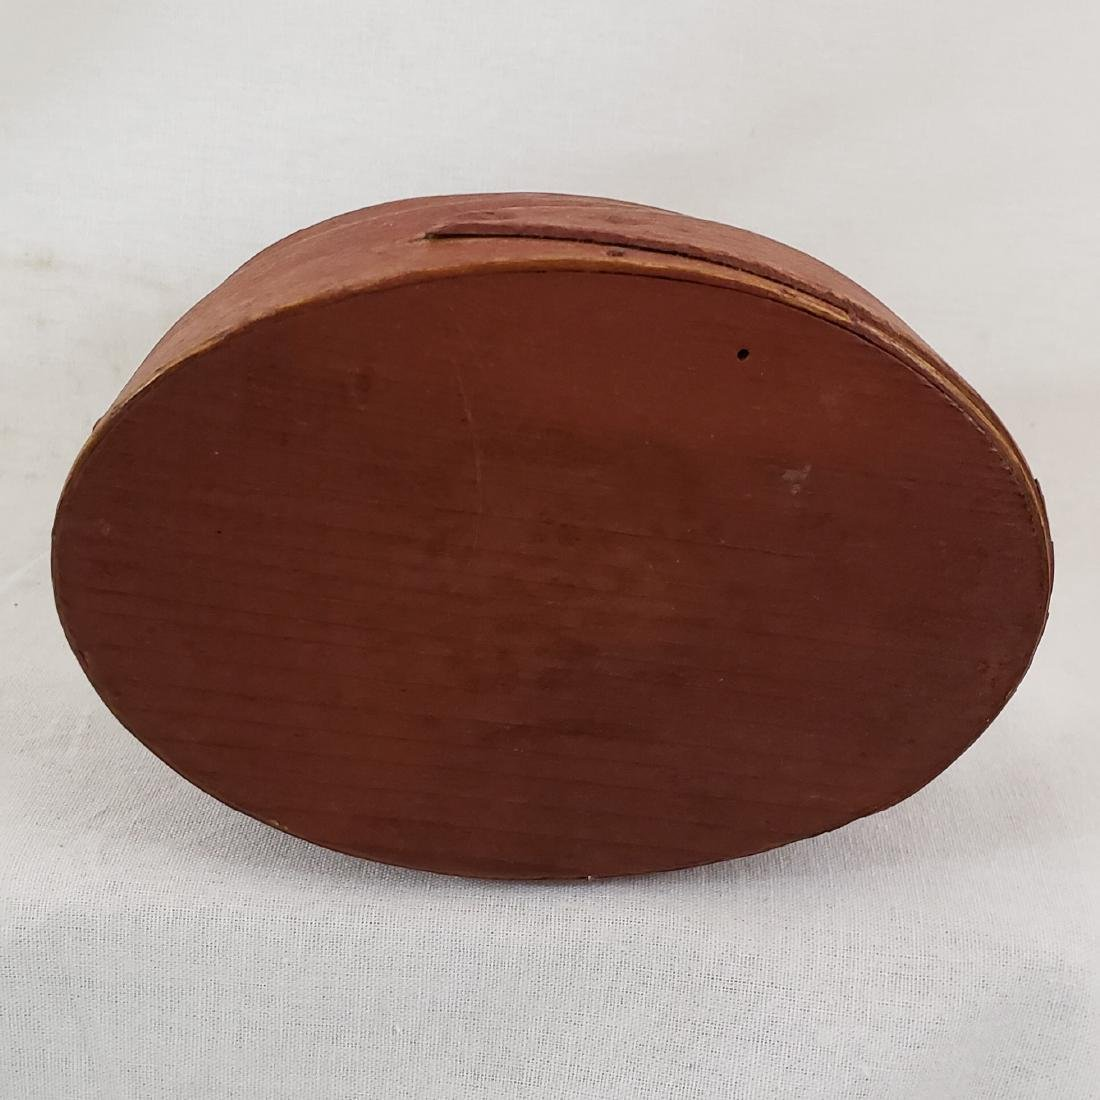 Harvard Style Red Oval Pantry Box Ca 1850-70 - 3